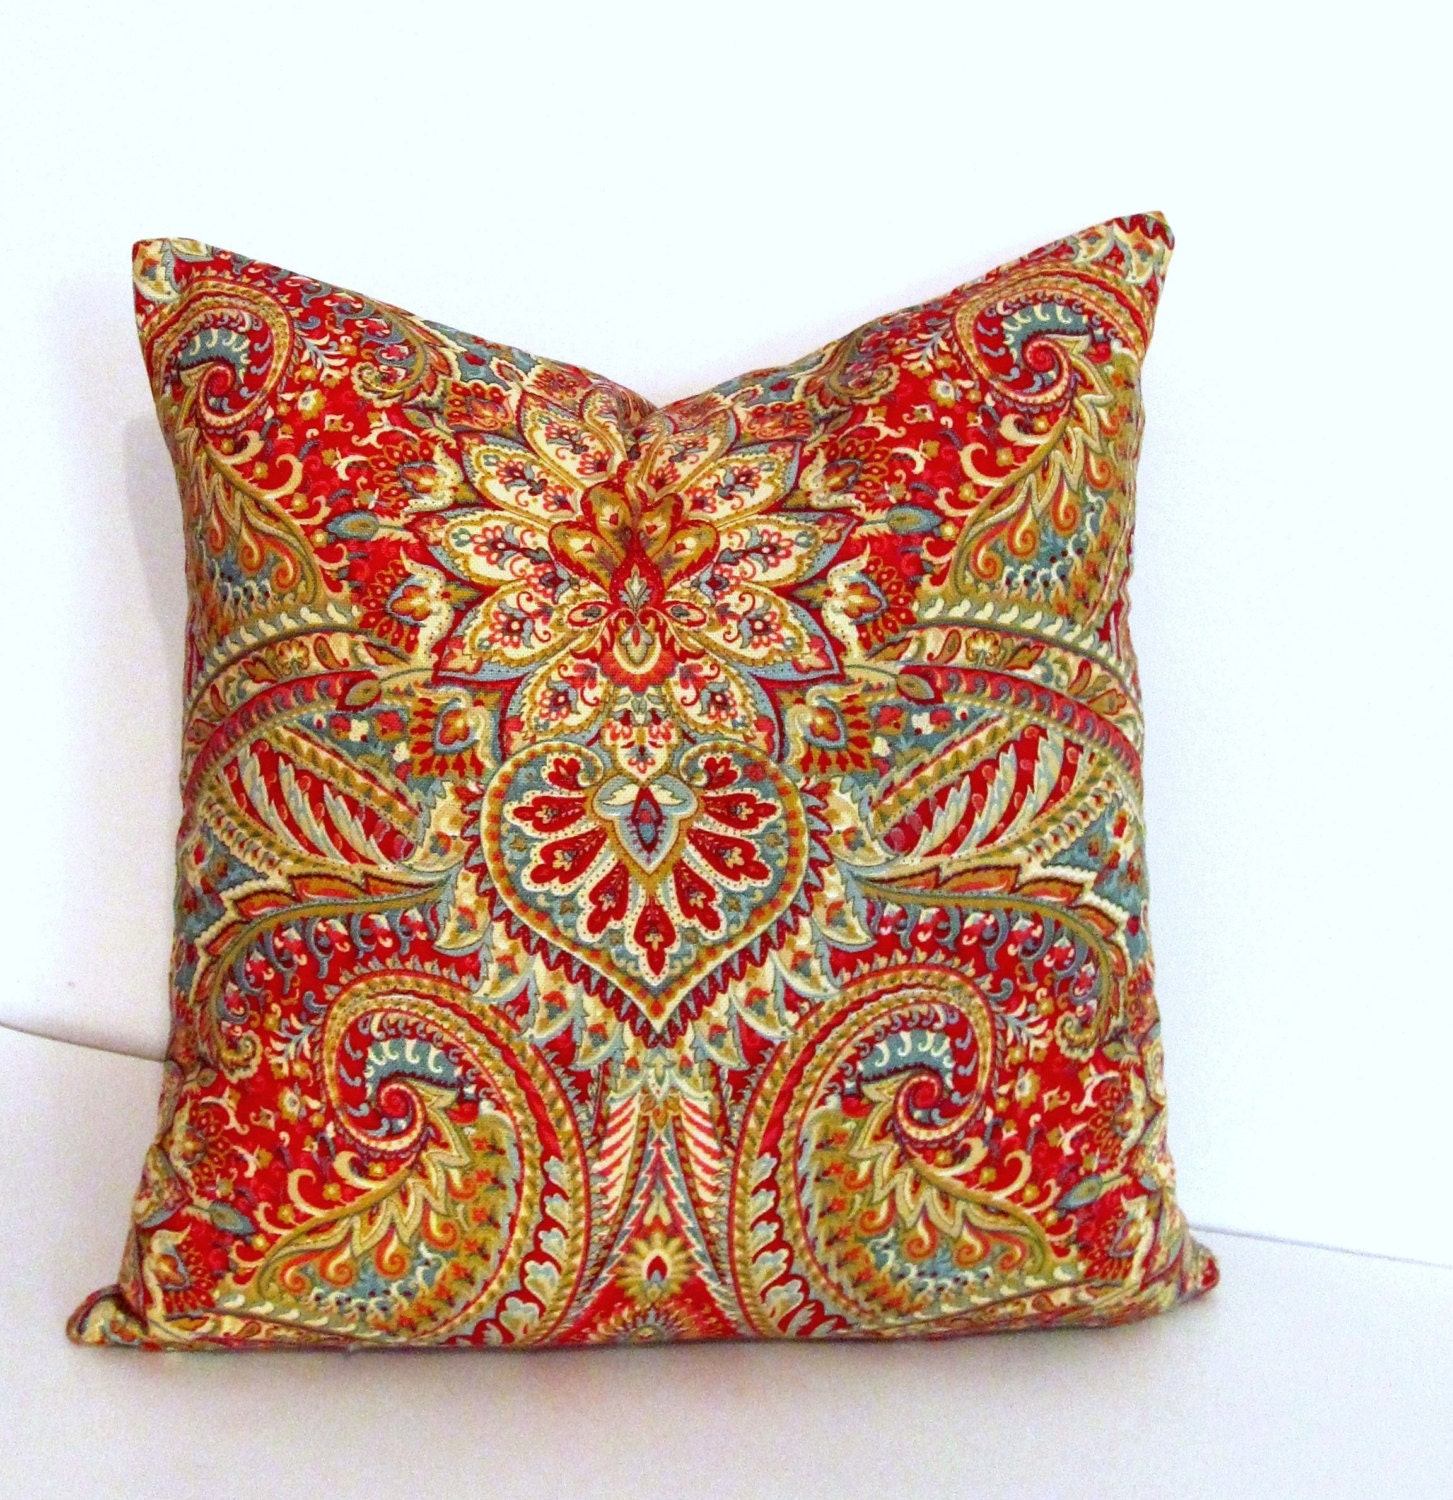 Waverly Decorative Throw Pillows : SALE Decorative Pillow Cover 18 by 18 Waverly Swept